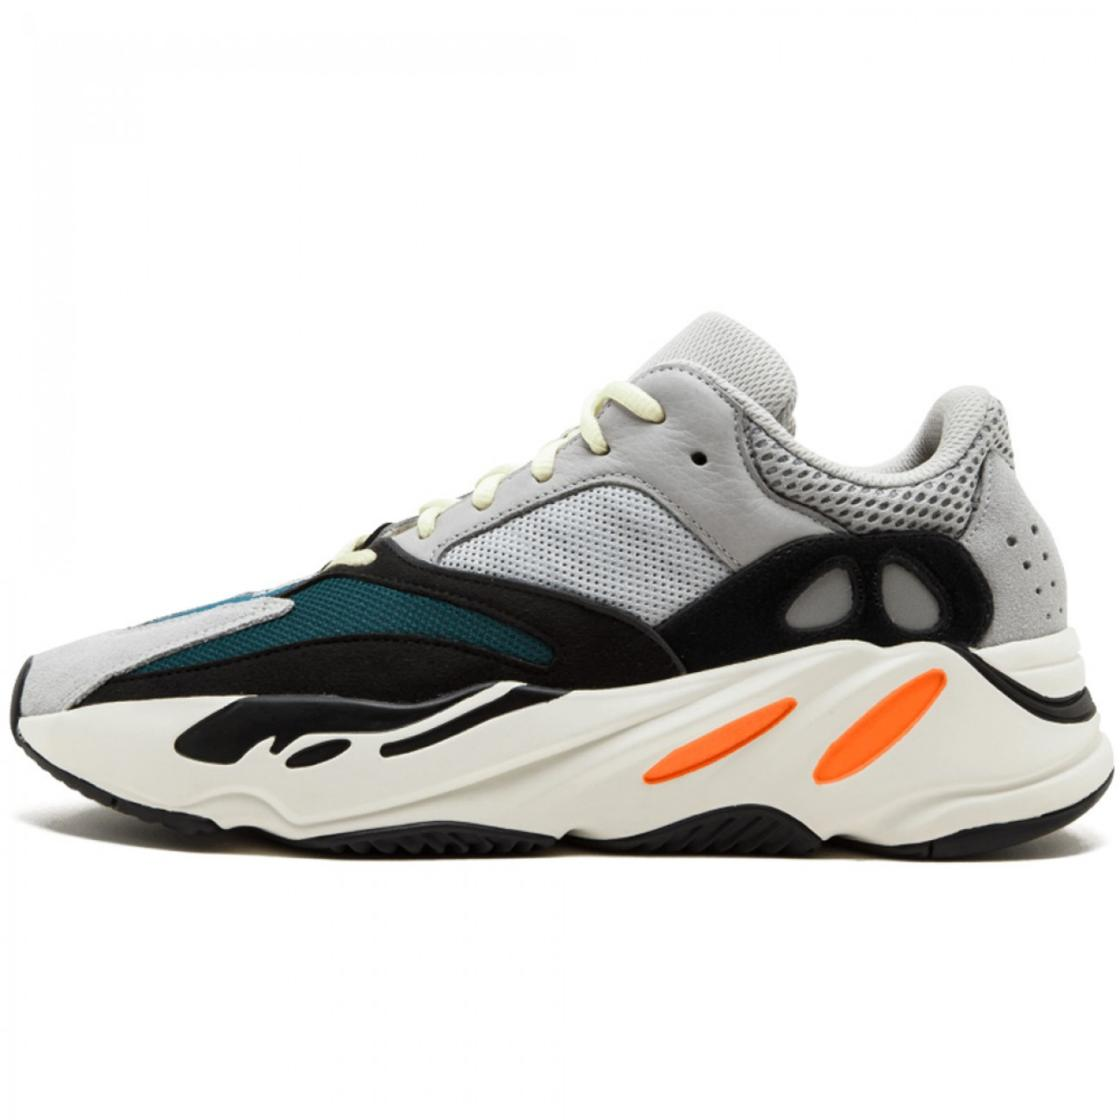 check out 2a3aa de2c1 ADIDAS YEEZY 700 WAVE RUNNER